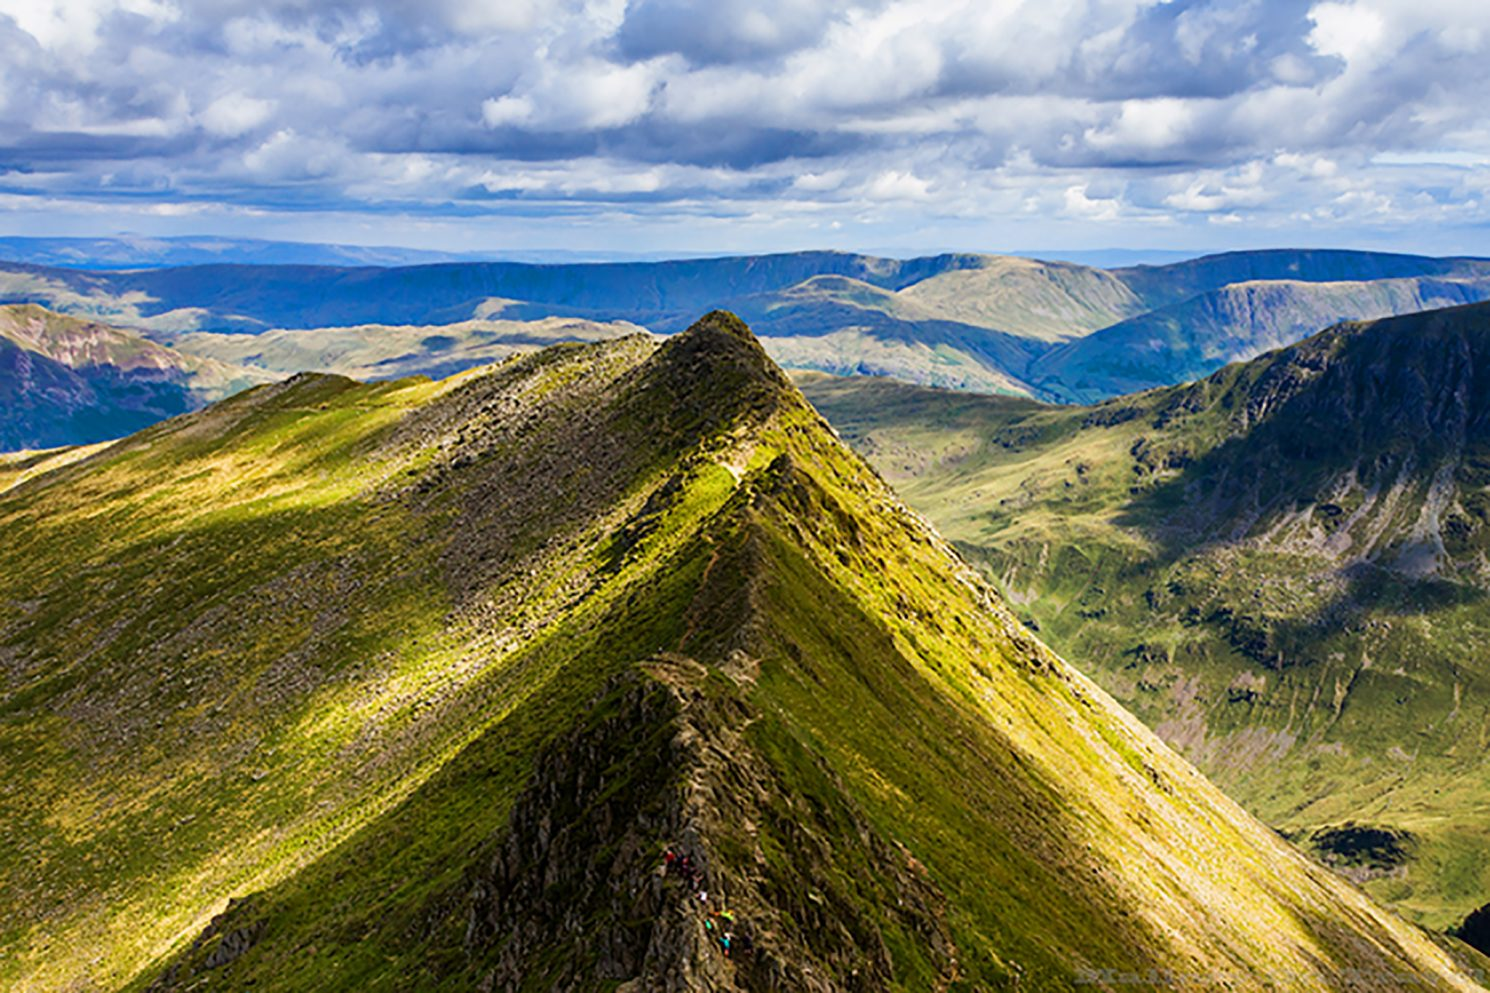 Striding Edge, famous scramble on Helvellyn in the English Lake District on Mallory on Travel adventure, adventure travel, photography Iain_Mallory_Can14015631 striding_edge